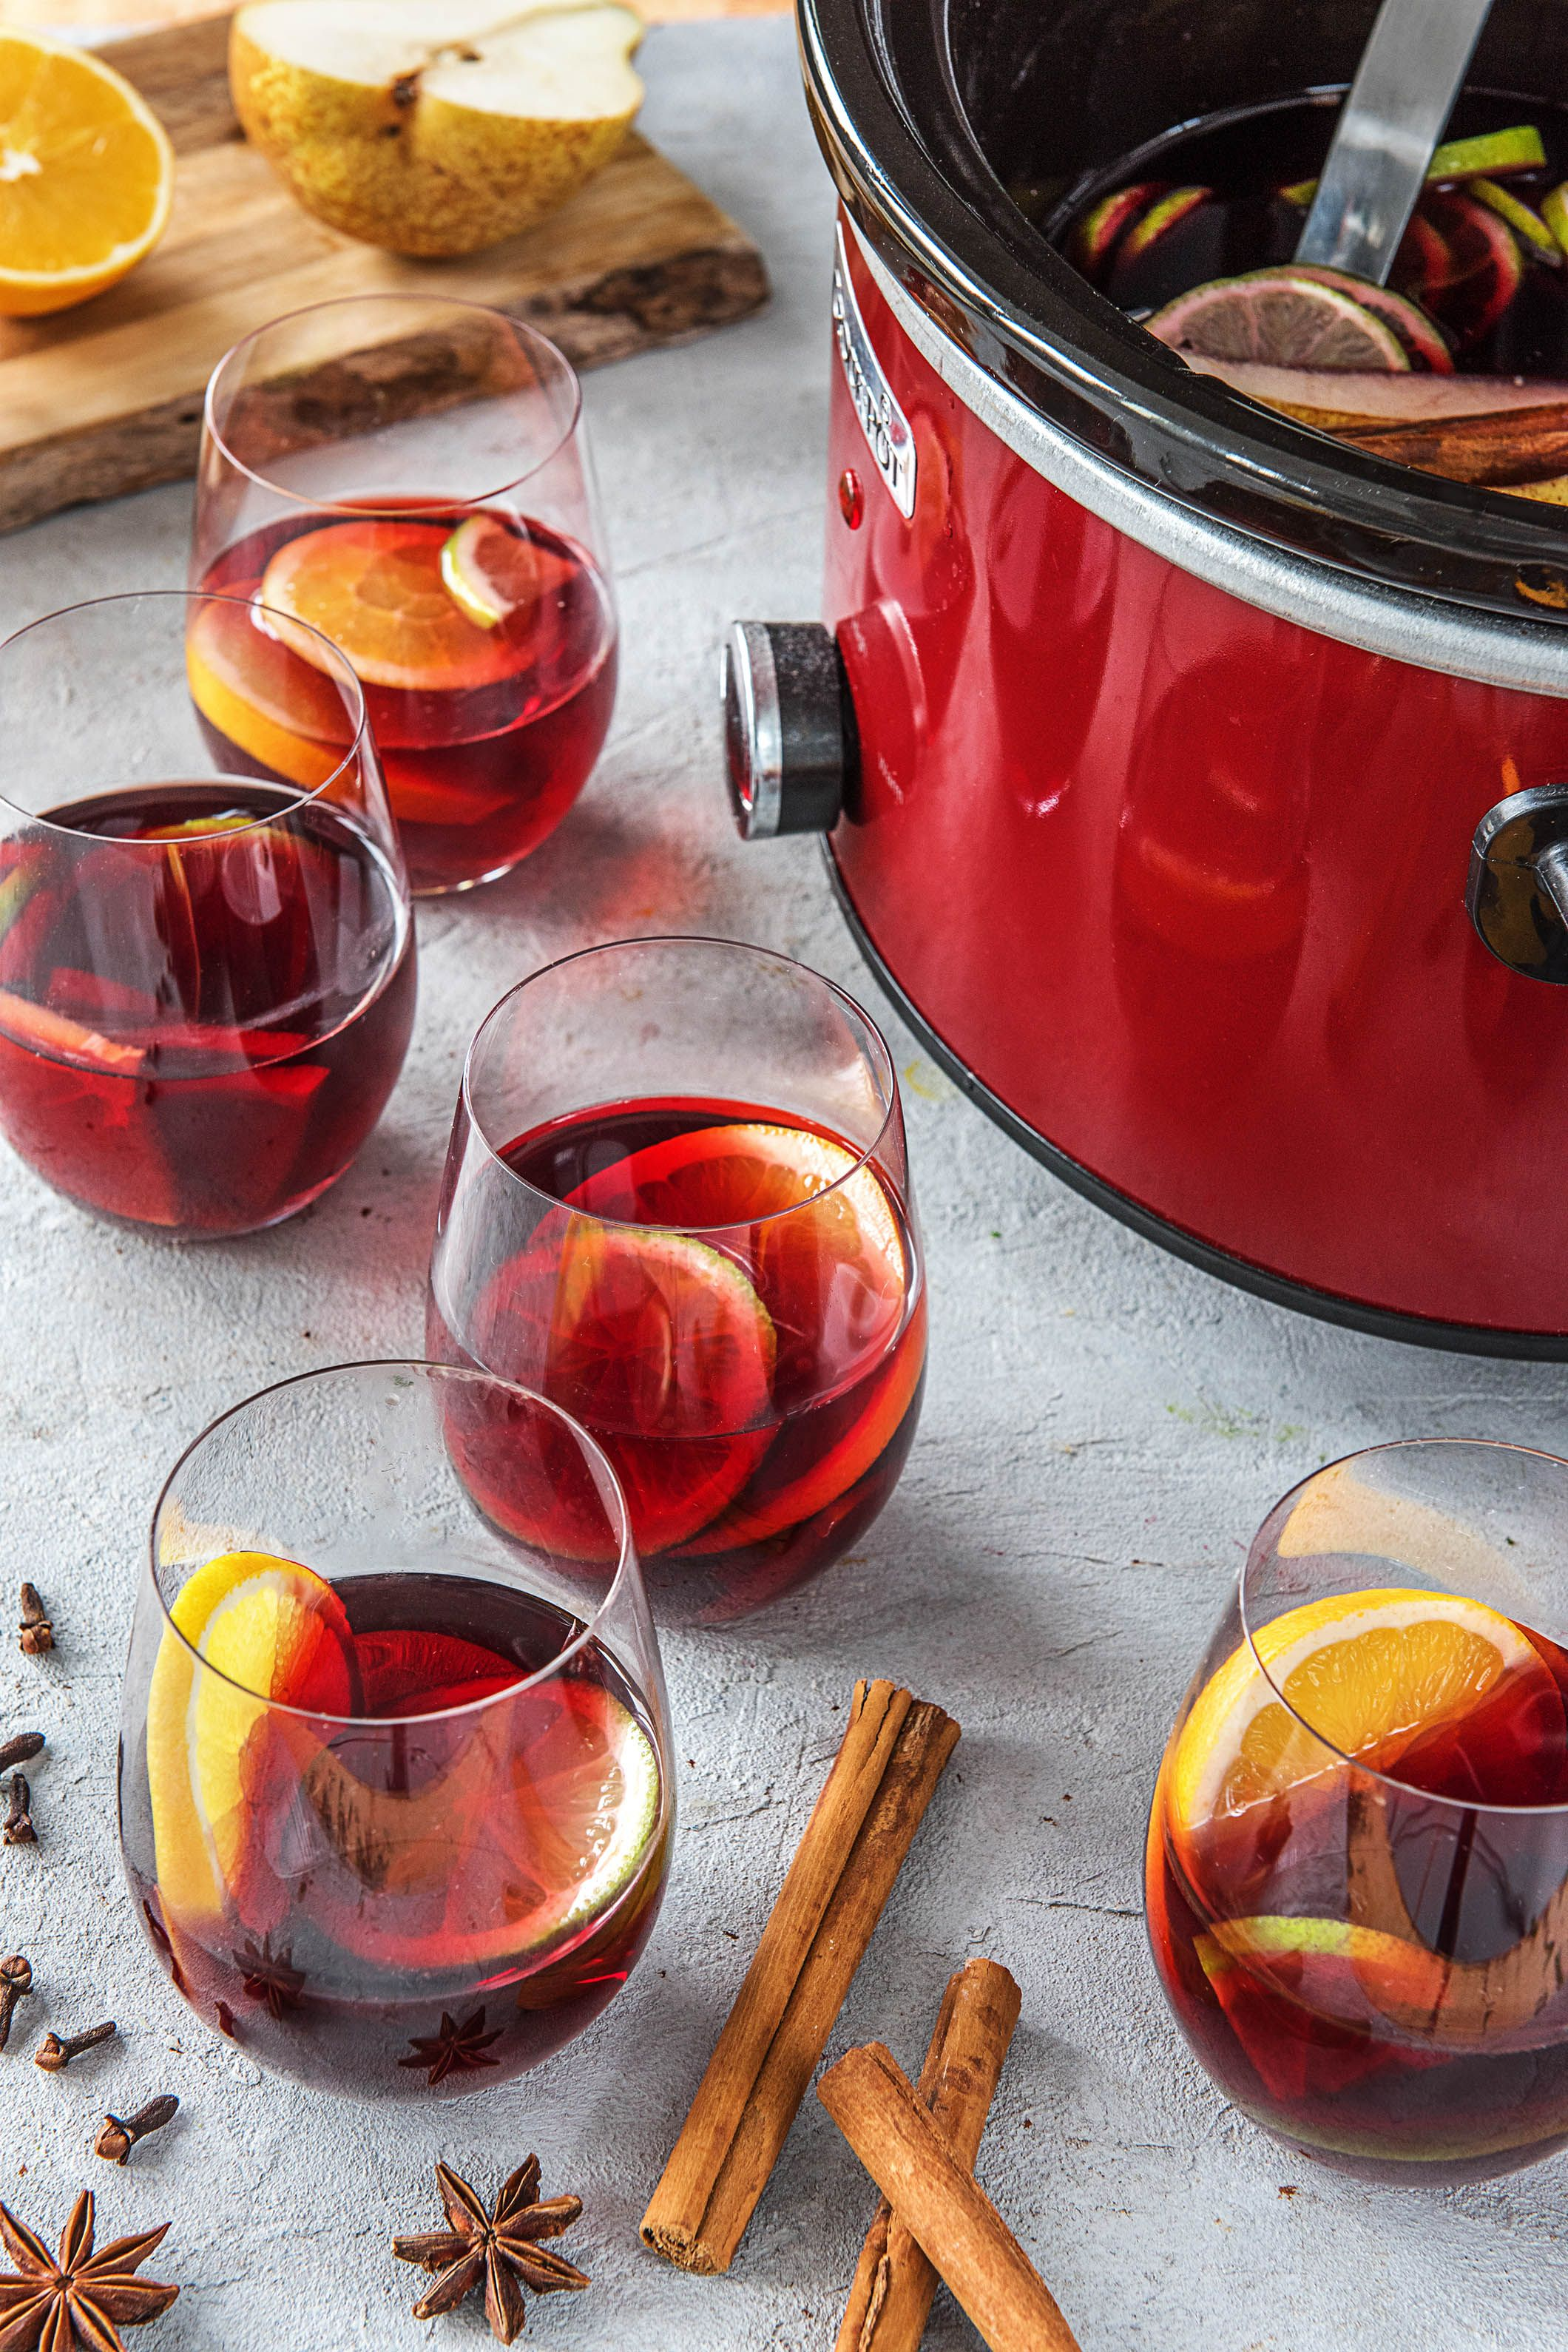 How To Make Spiced Wine In A Slow Cooker The Fresh Times Spiced Wine Recipe Mulled Wine Recipe Spiced Wine